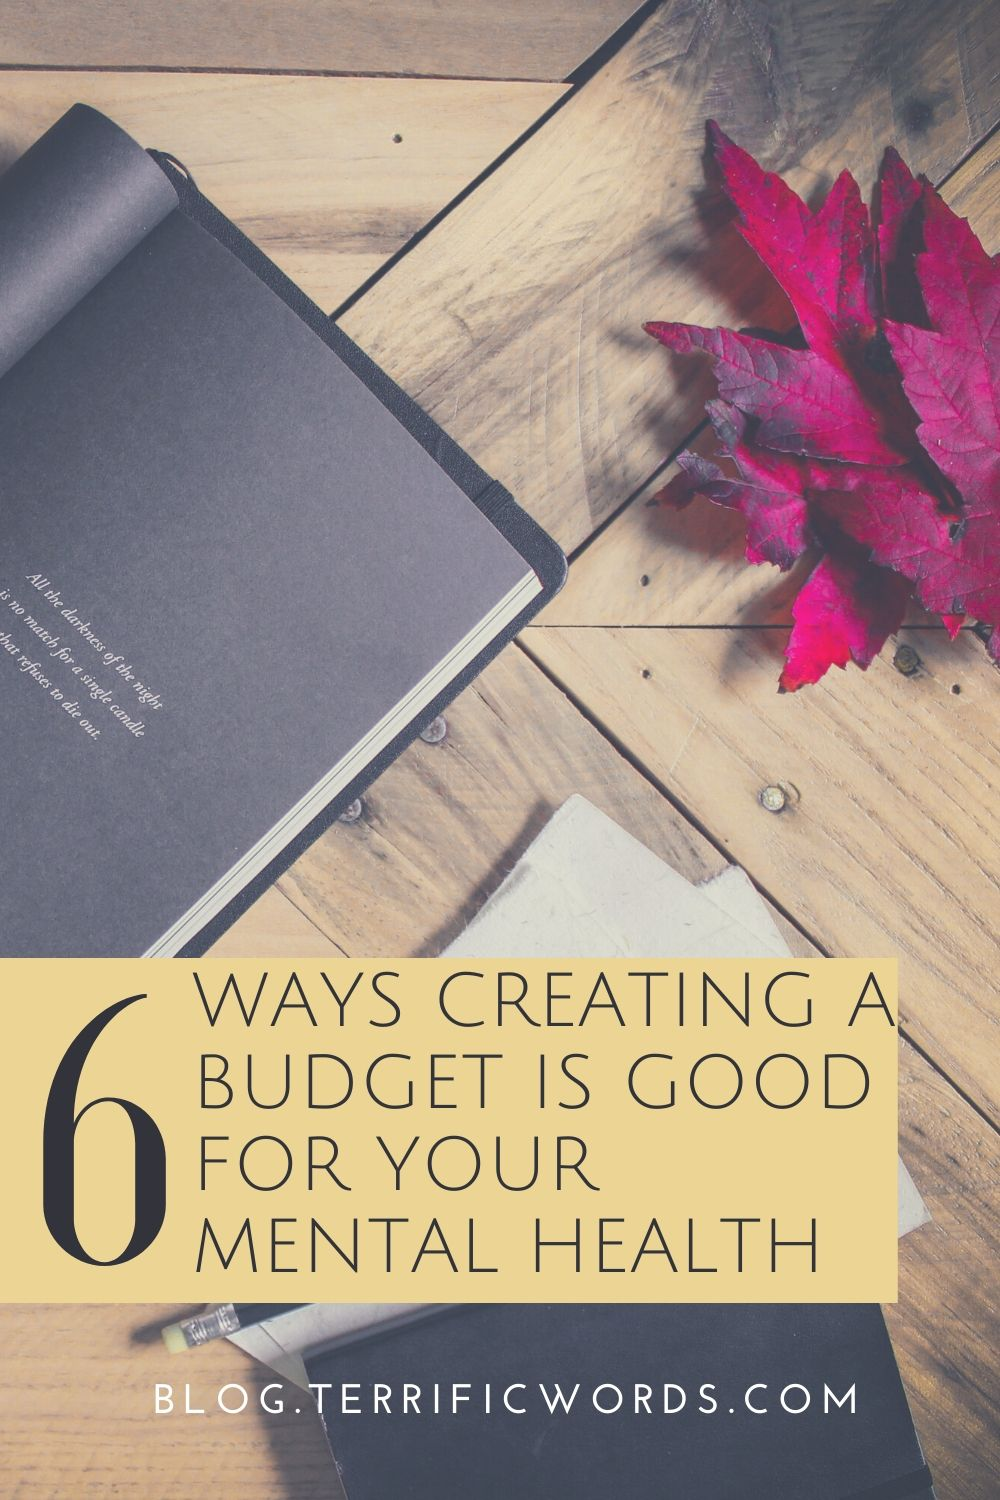 6 Ways Creating a Budget is Good for your mental health